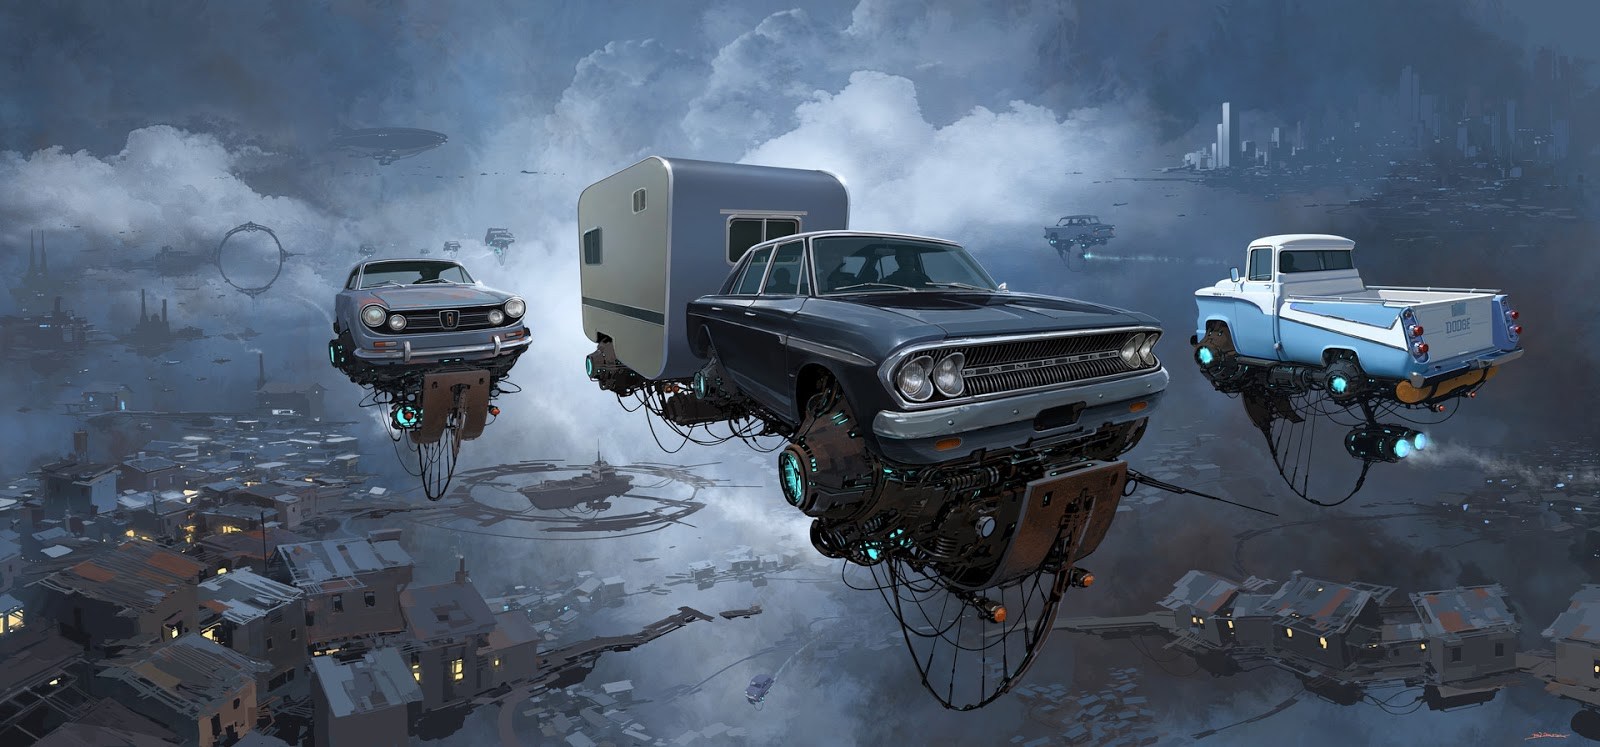 Images: This Is Our Future: A Collection Of Imaginative Sci-Fi Art From Alejandro Burdisio